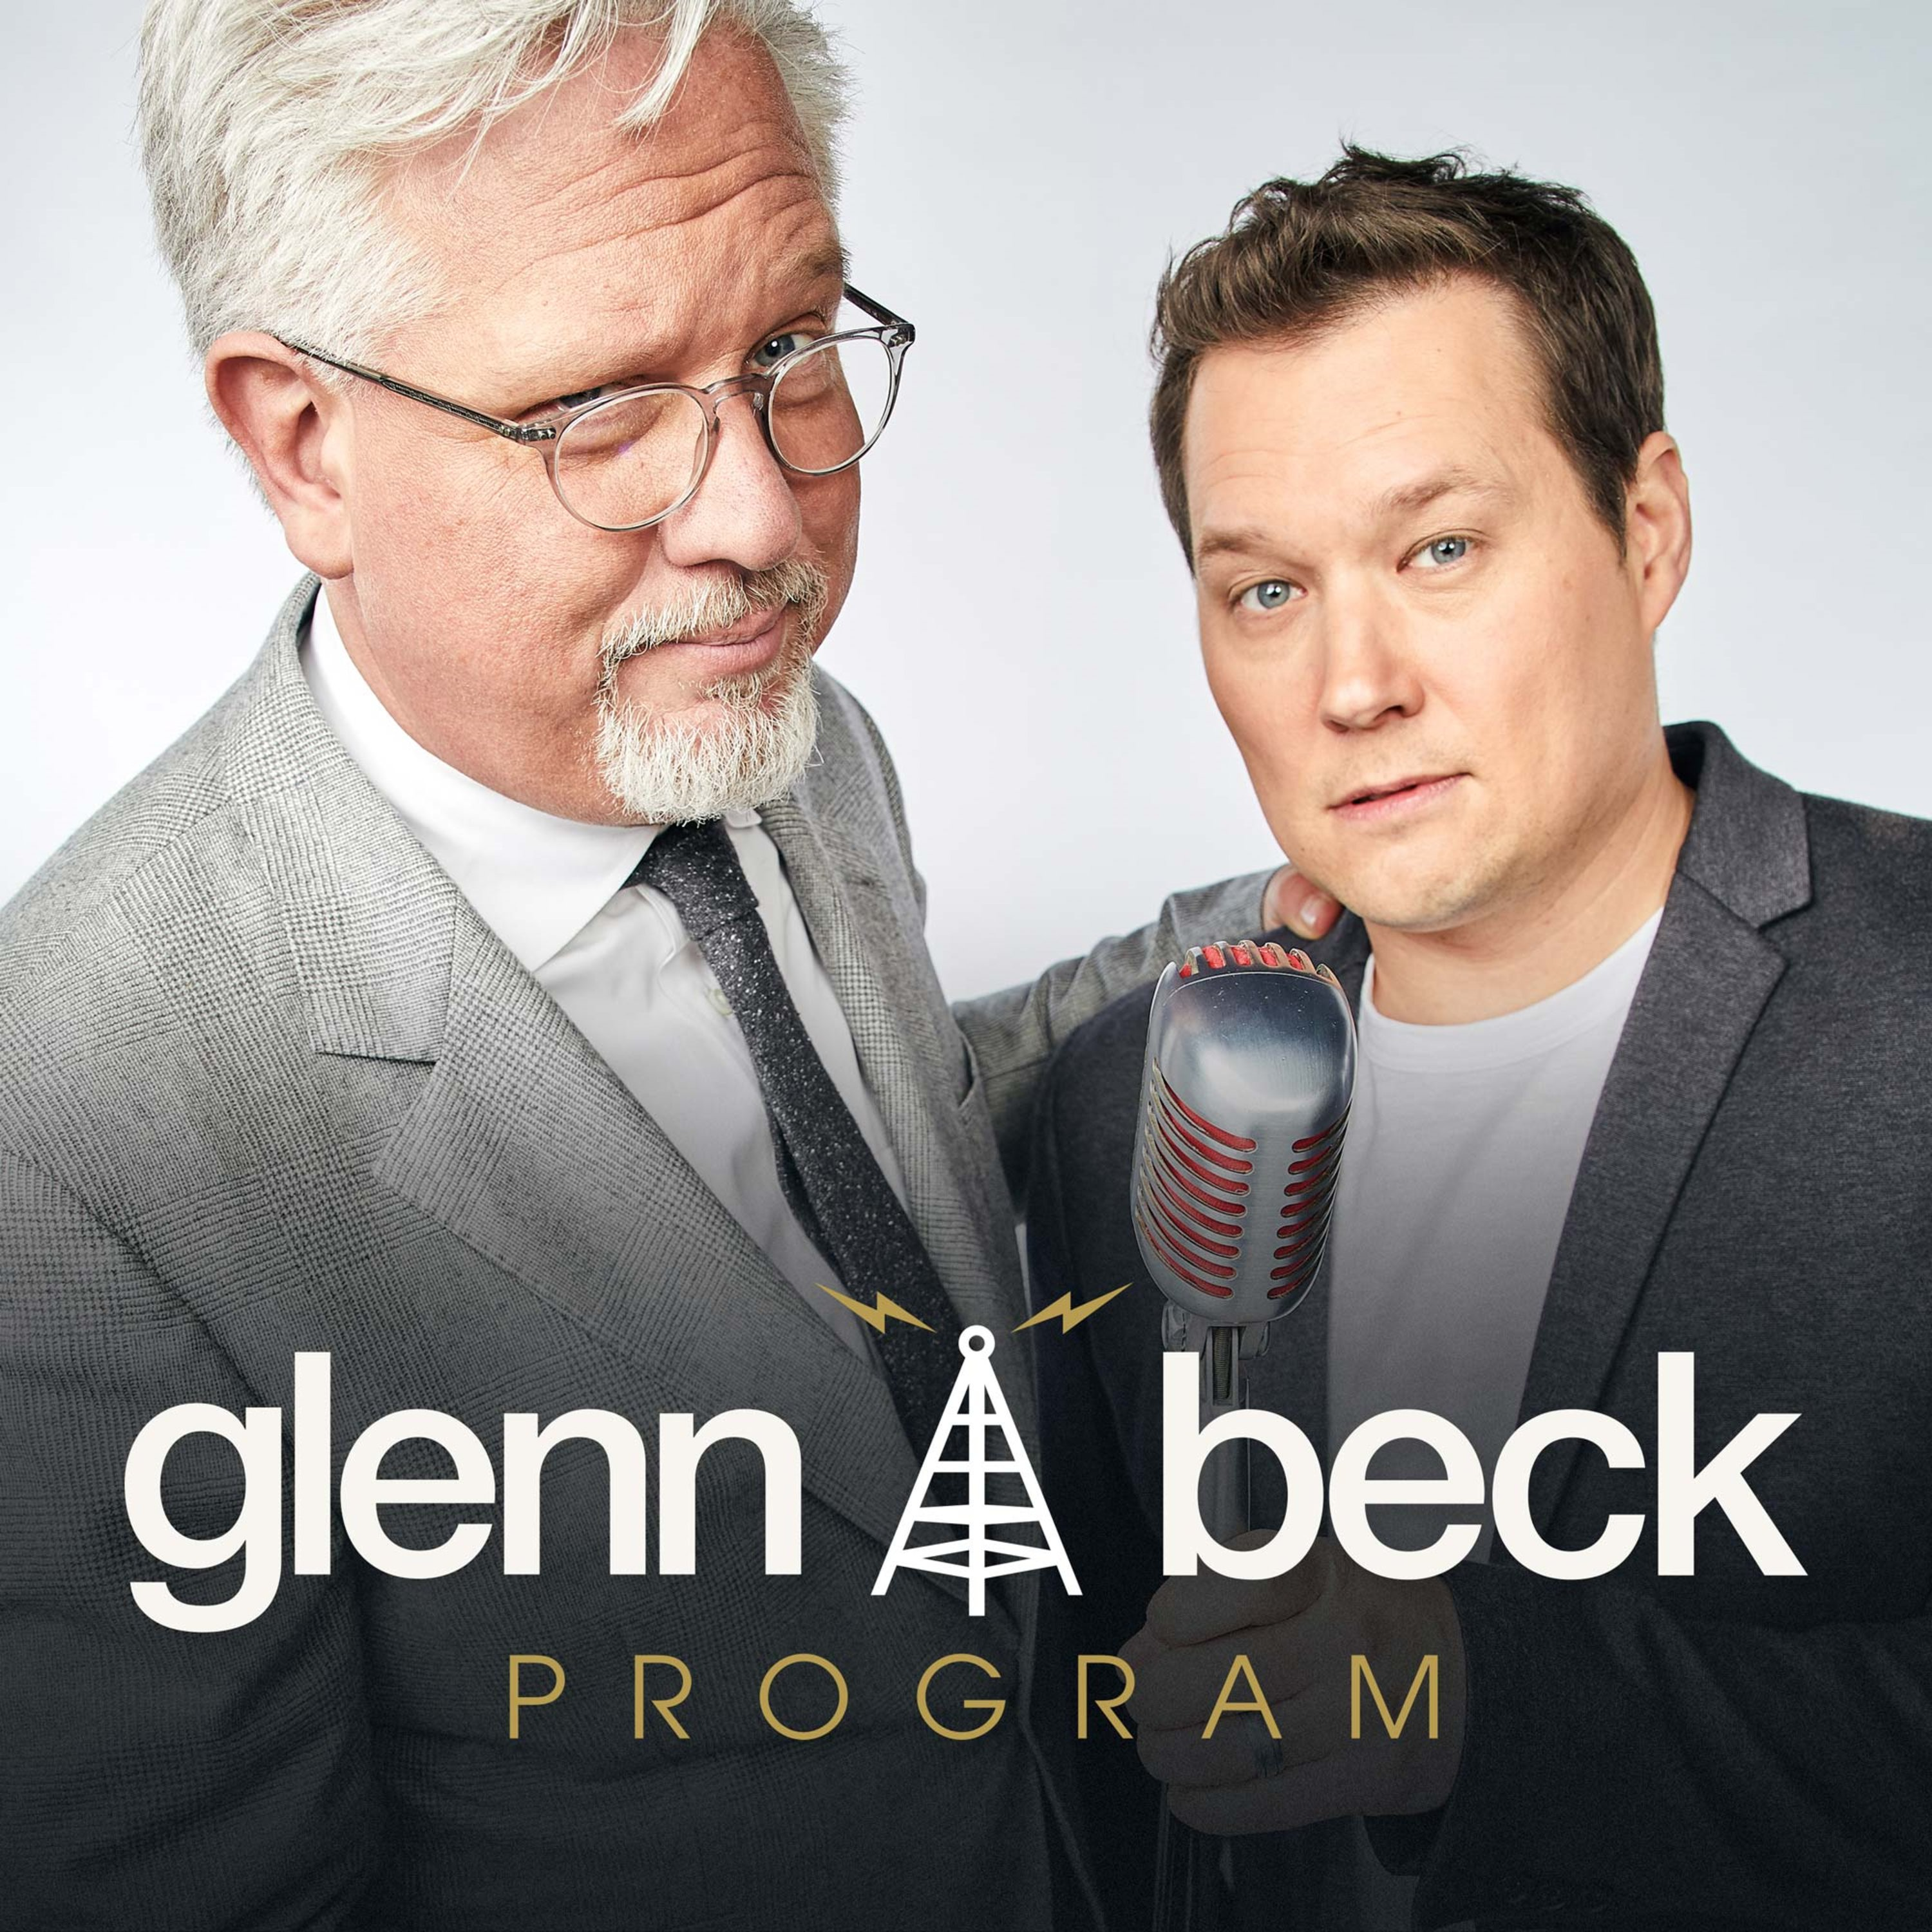 Glenn-Beck-Program